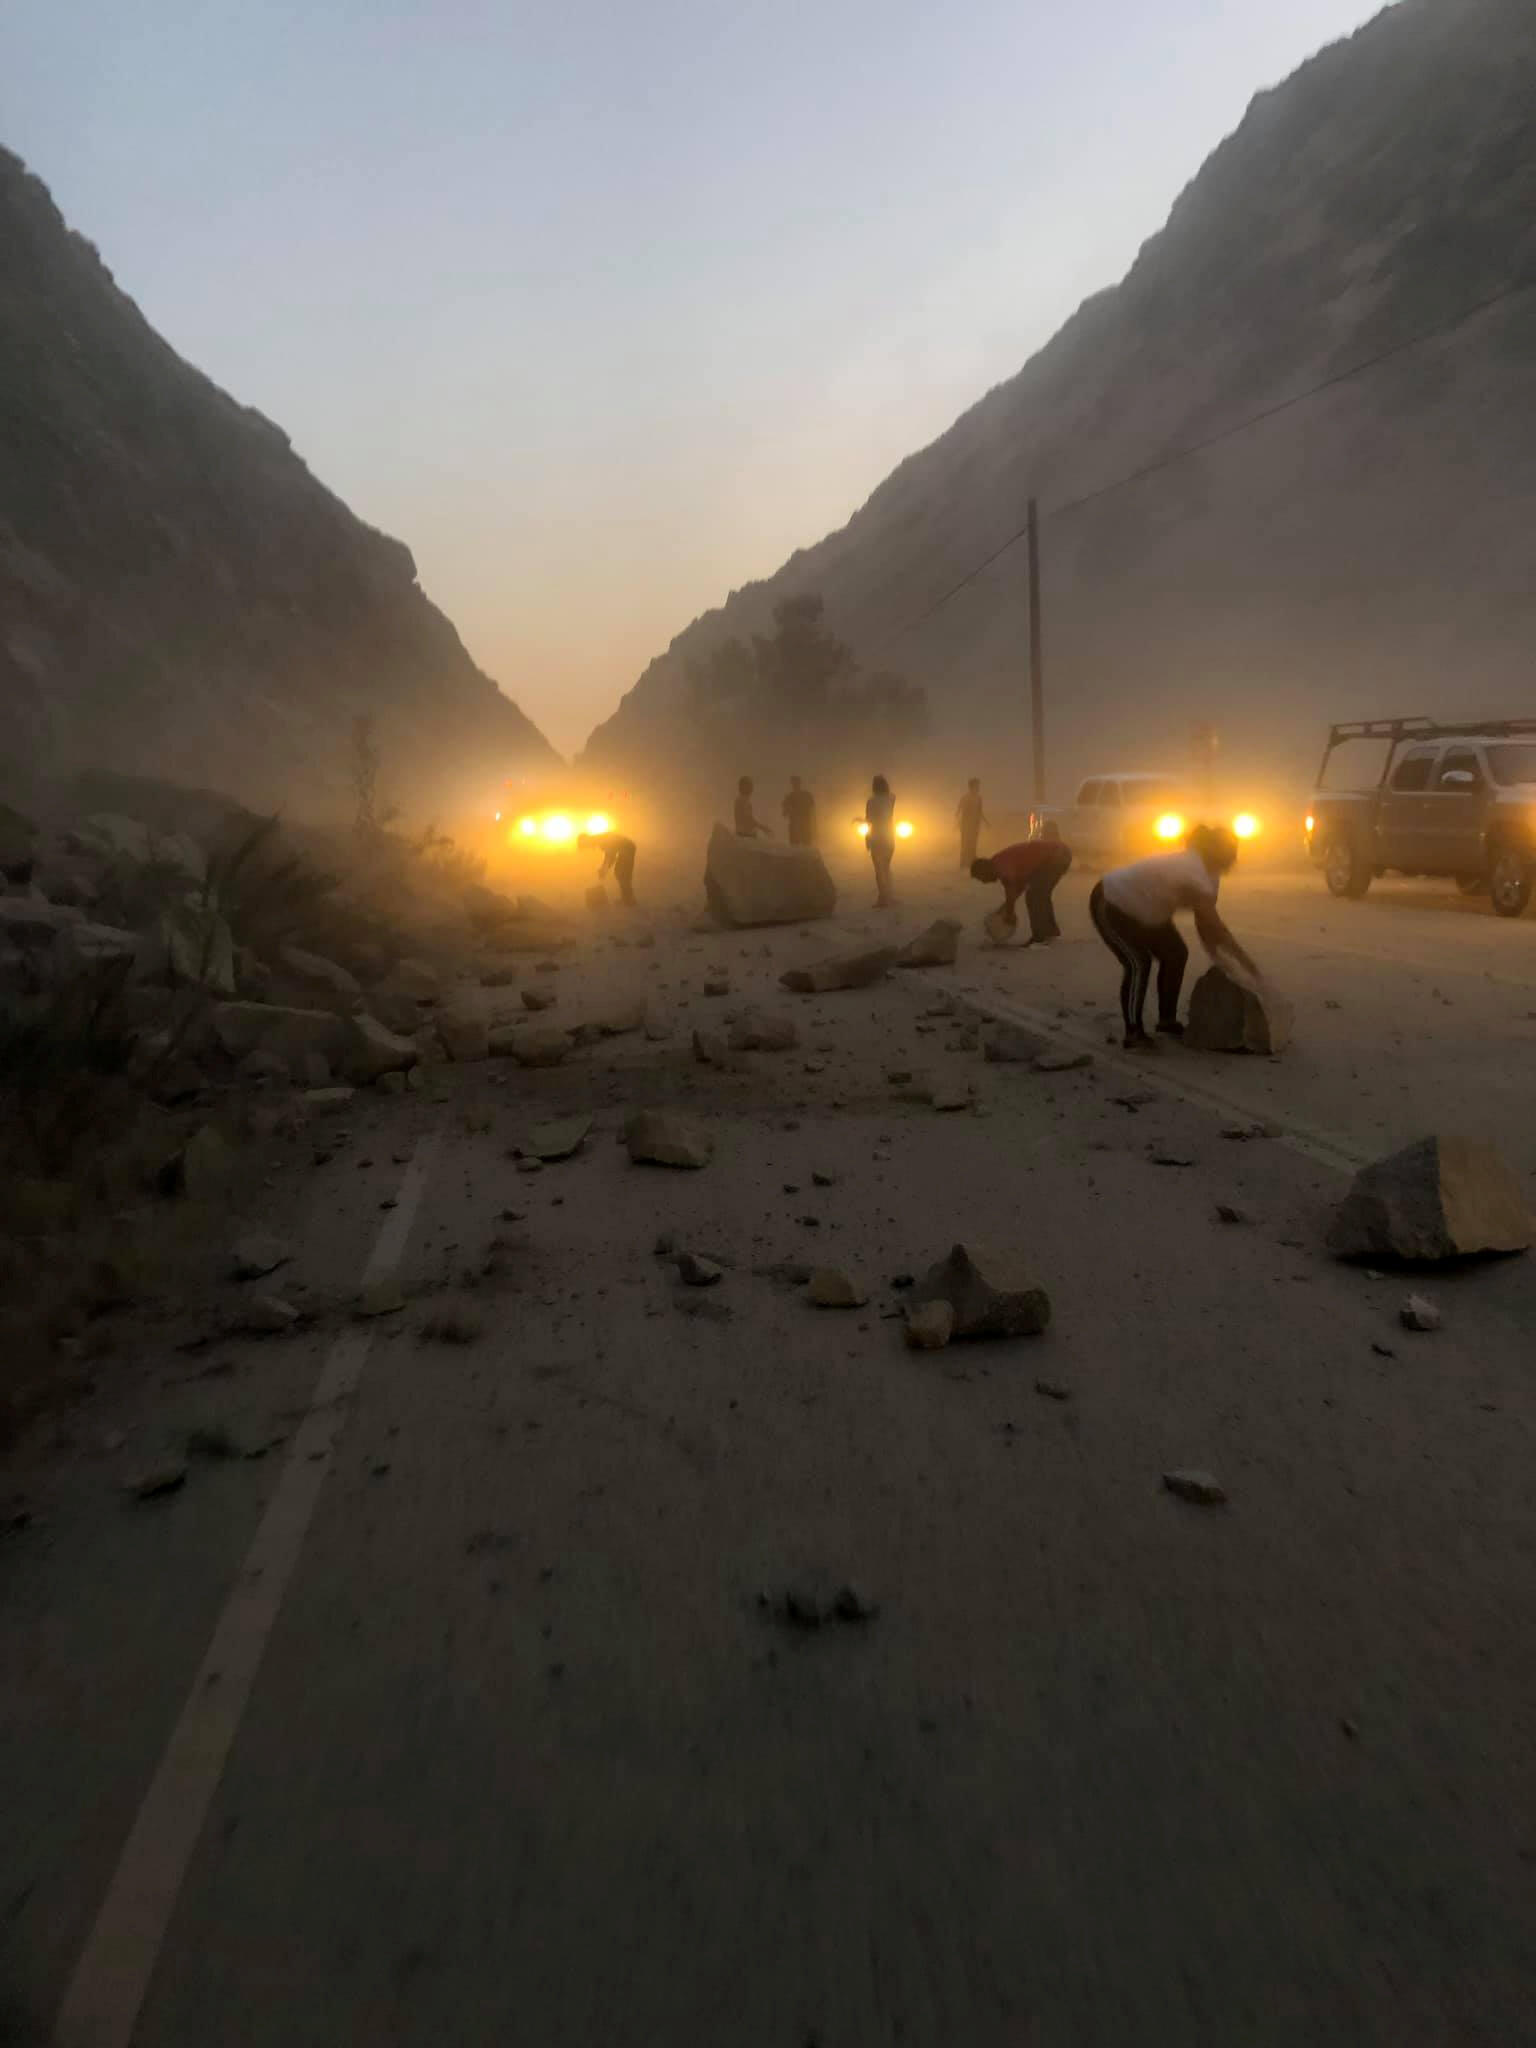 Aftermath of a rockslide caused by the earthquake in Kern County, California, U.S., July 5, 2019